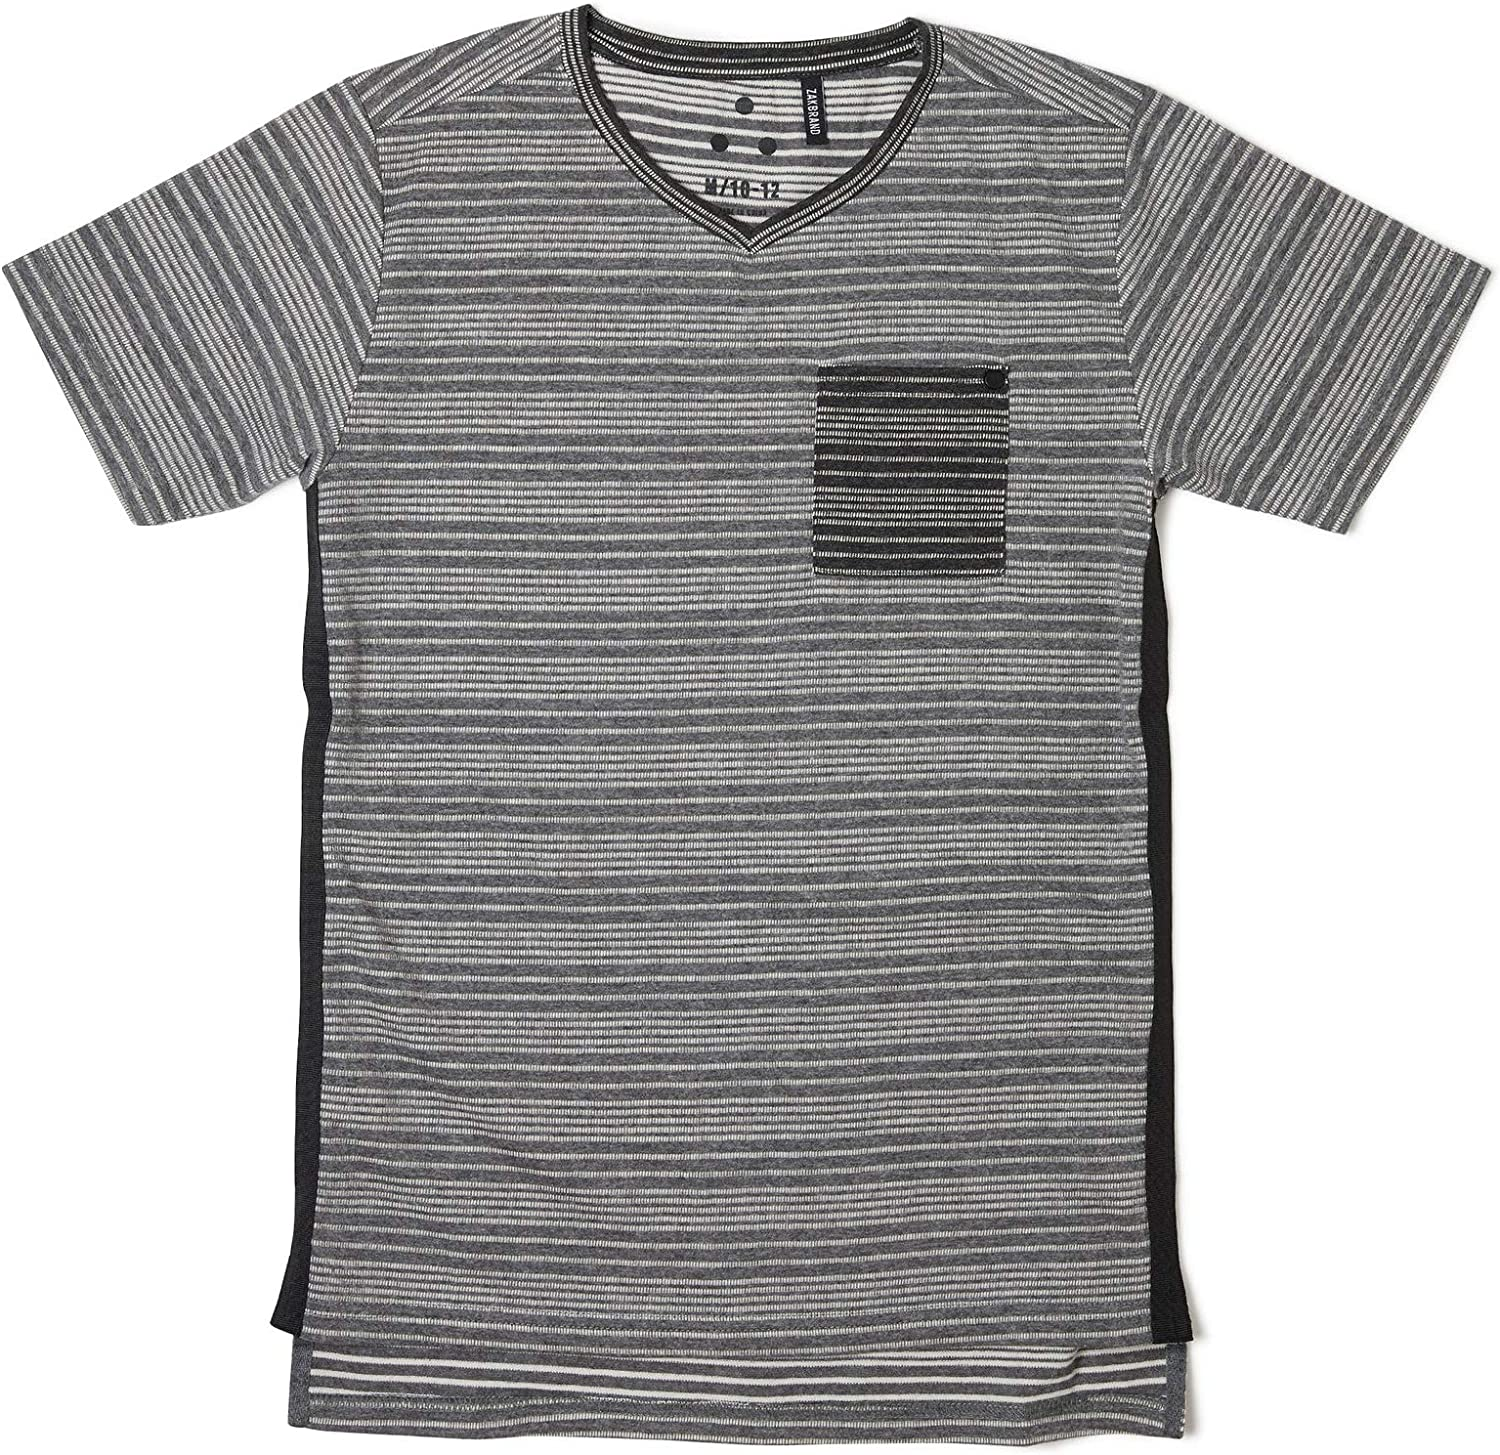 Zak Brand Kids for Boys V-Neck T Shirt Striped Tee in Soft Jacquard Fabric with Contrast Side Taping Black and Grey Costa